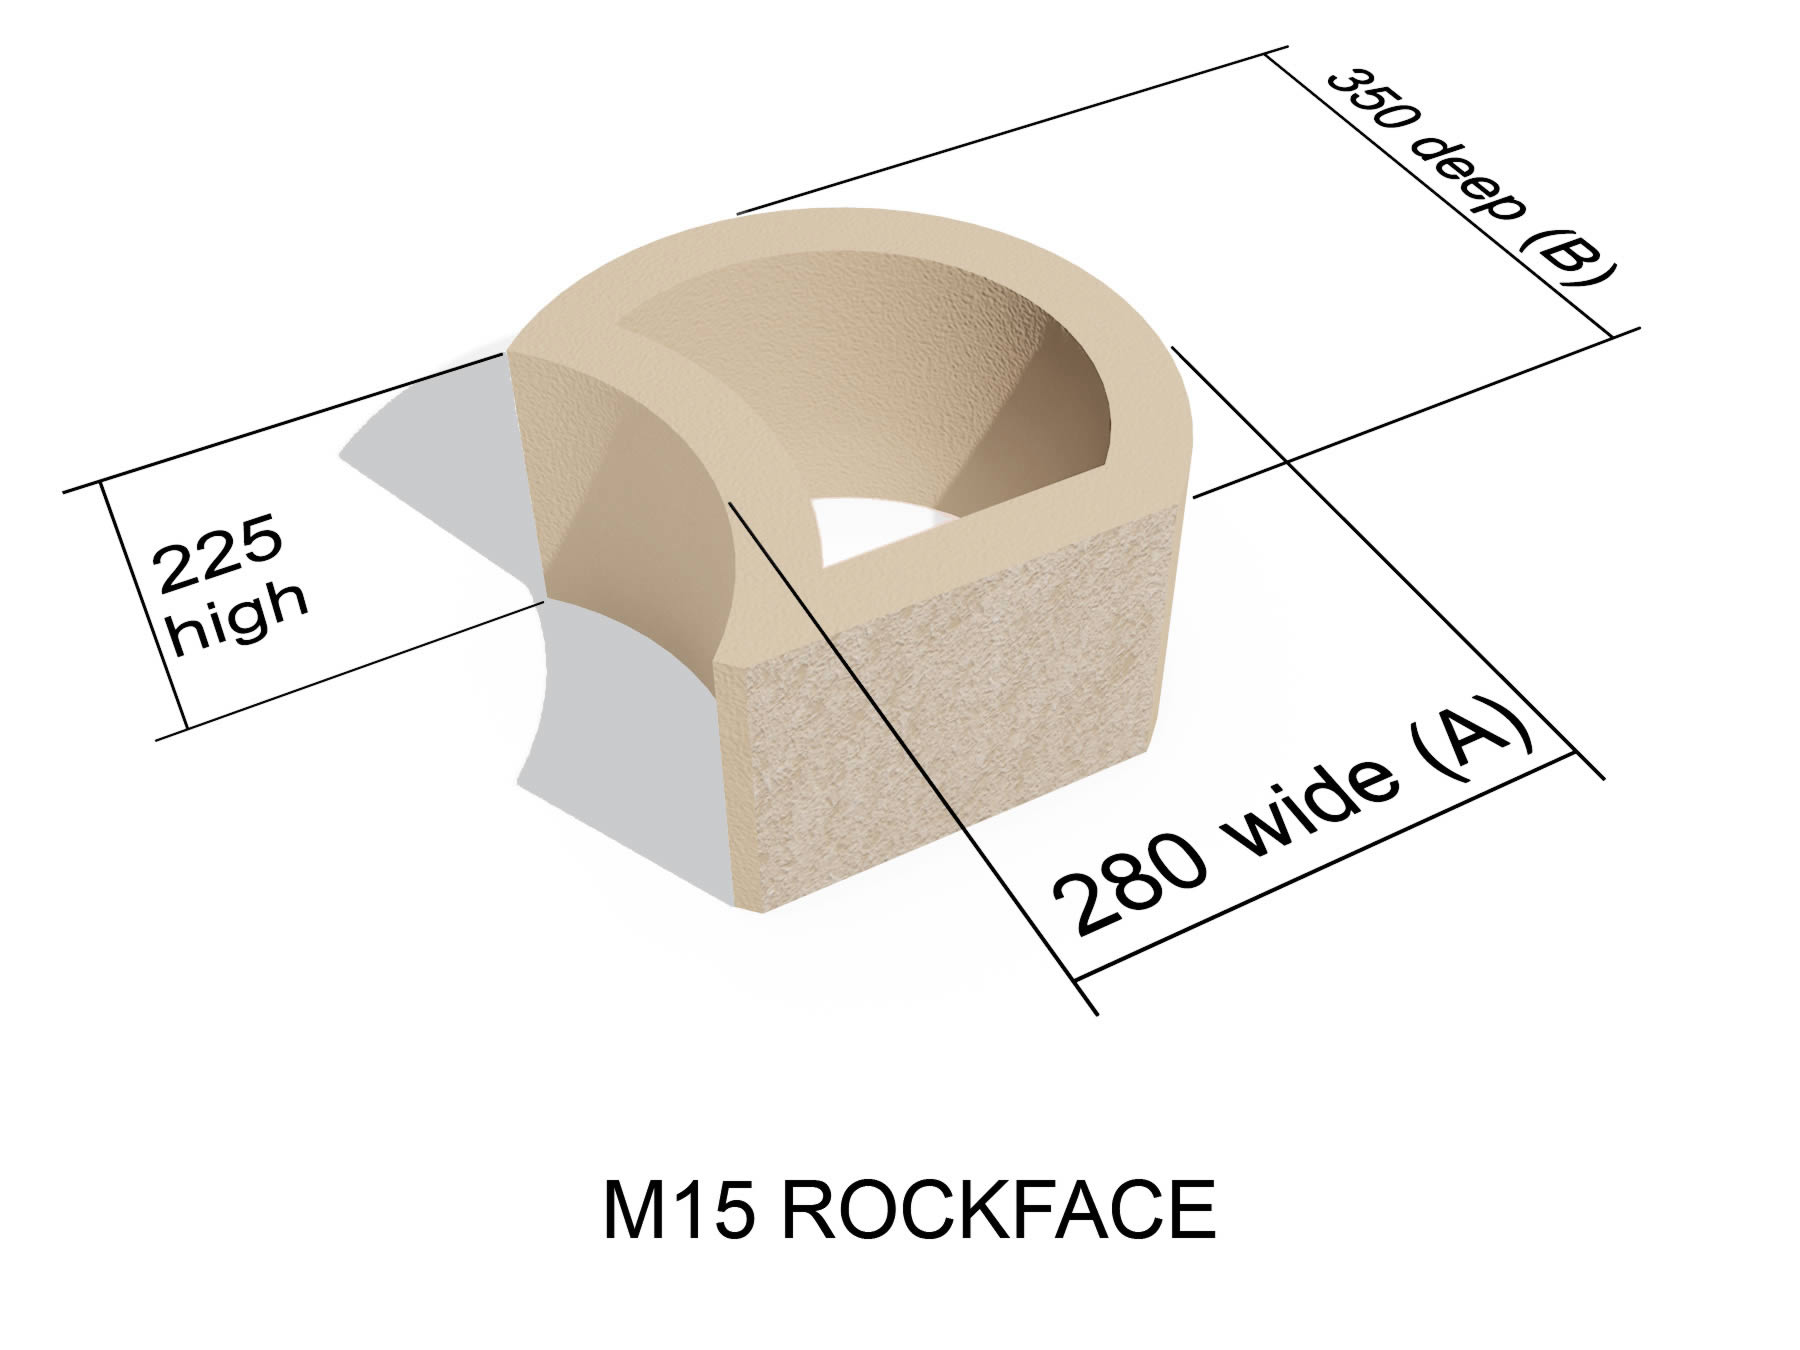 M15 Rock Face block